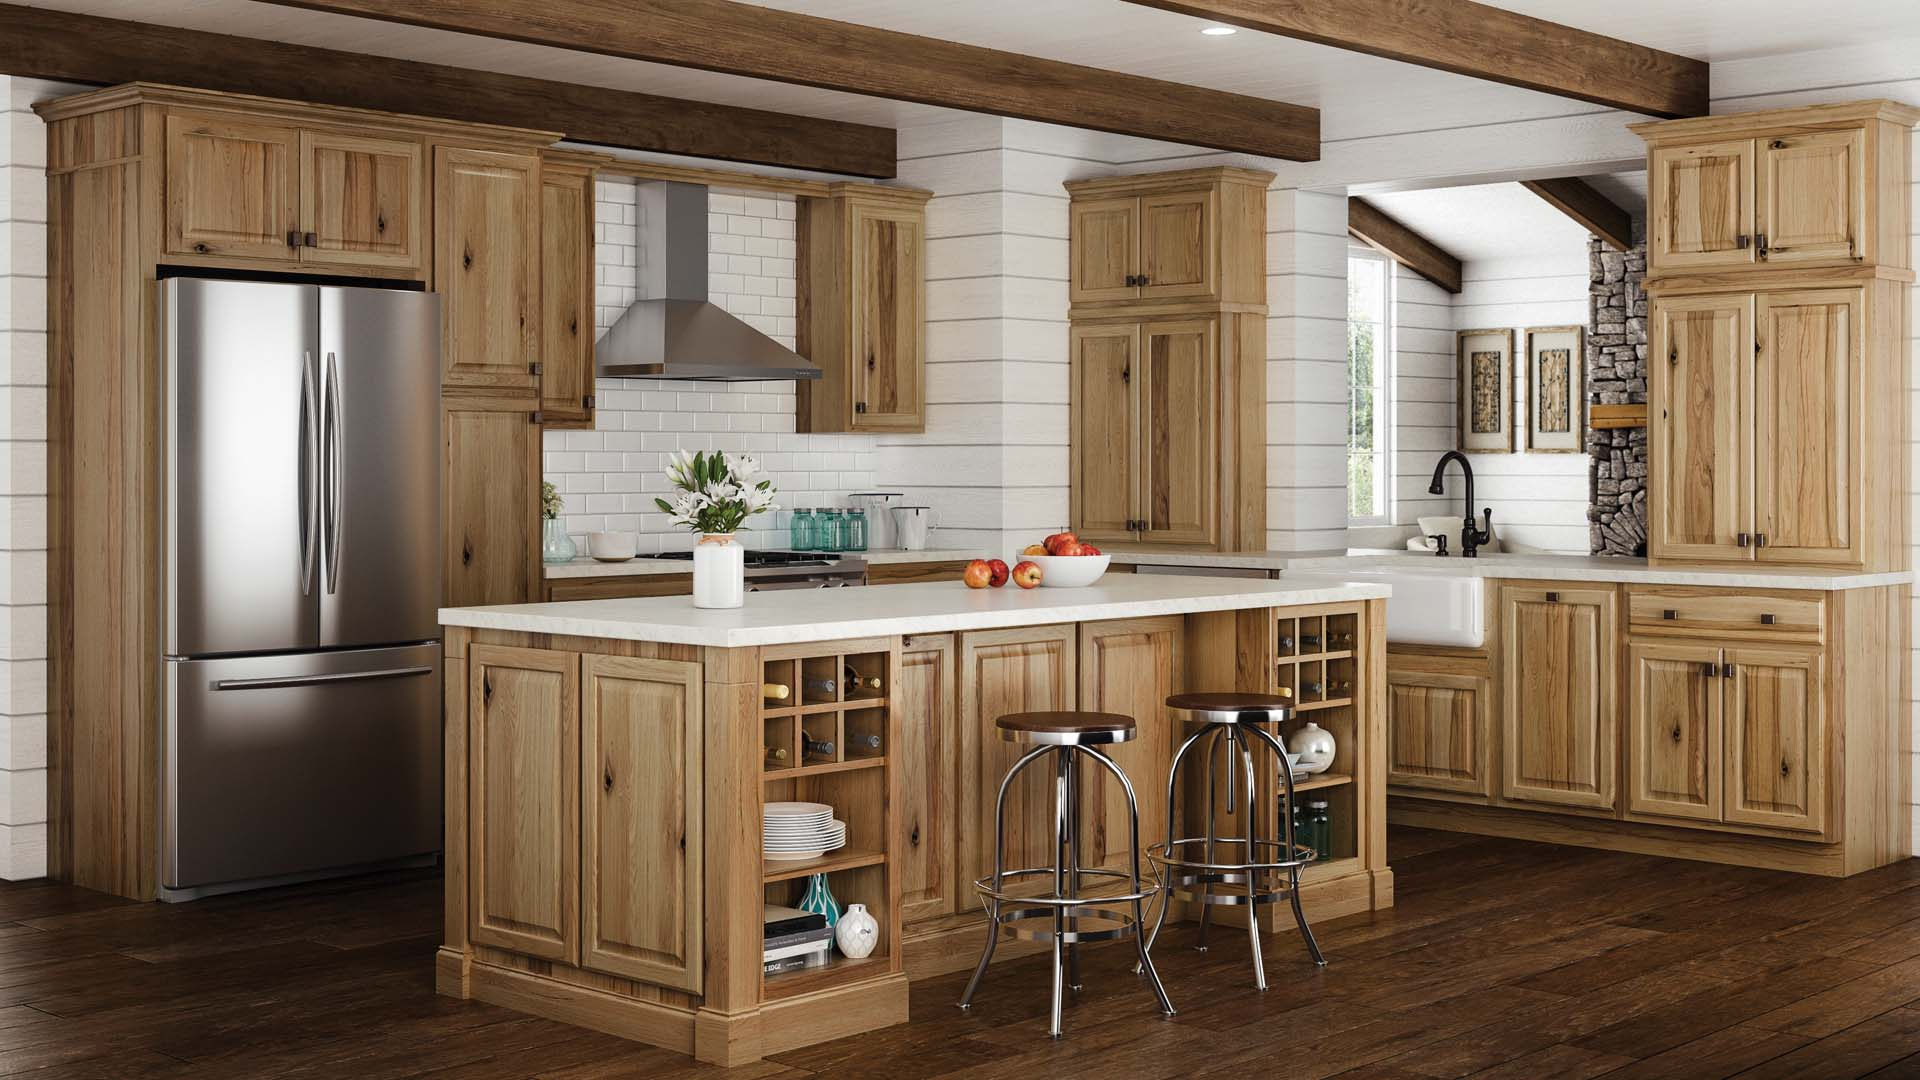 hampton bath cabinets in natural hickory kitchen the home depot. Black Bedroom Furniture Sets. Home Design Ideas